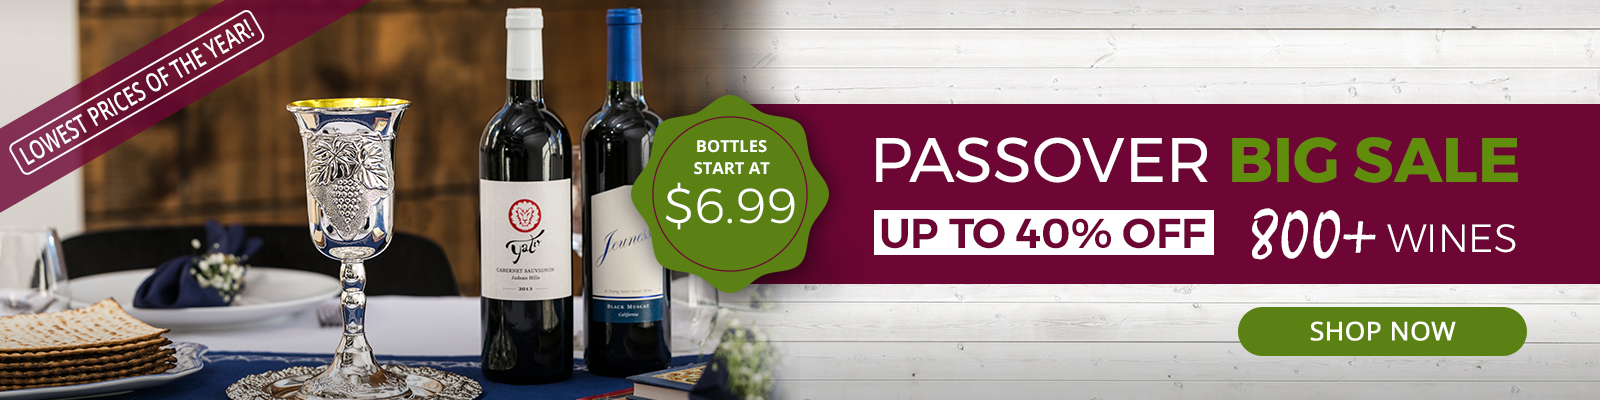 Get Ready For Passover! 800+ Wines On Sale.